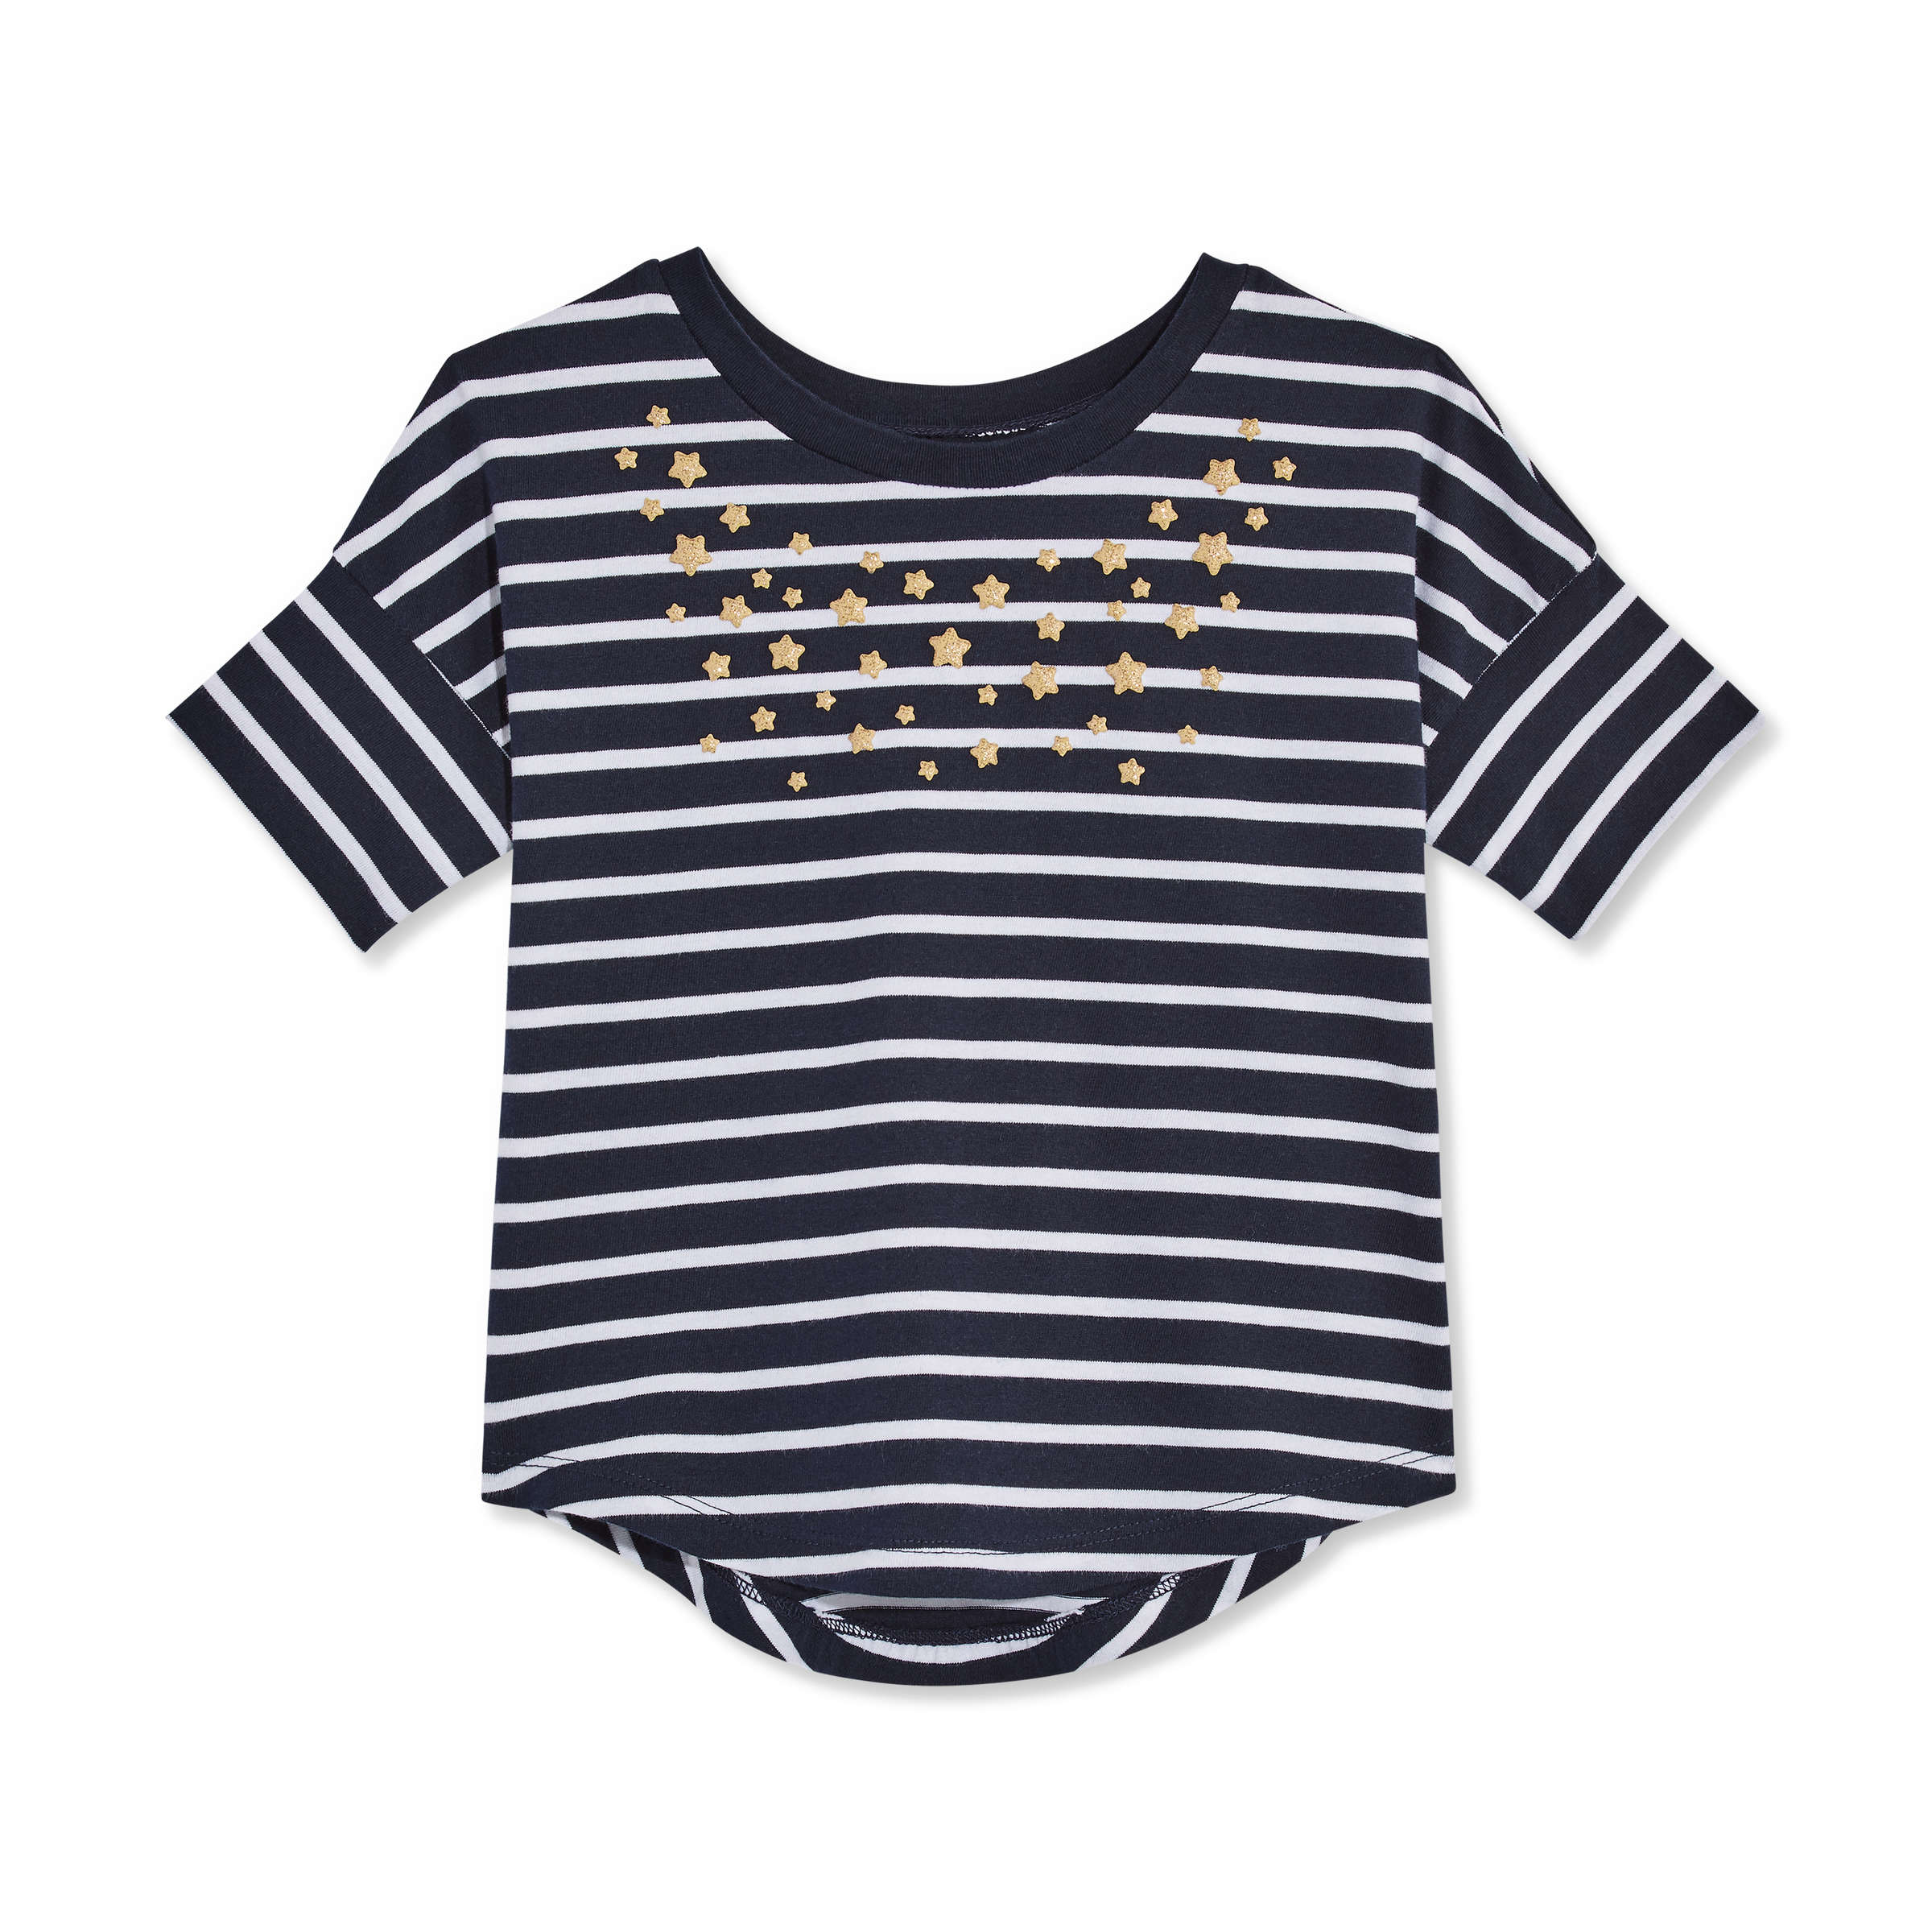 56eb09669 Toddler Girls' Stripe Round Hem Tee in JF Midnight Blue from Joe Fresh